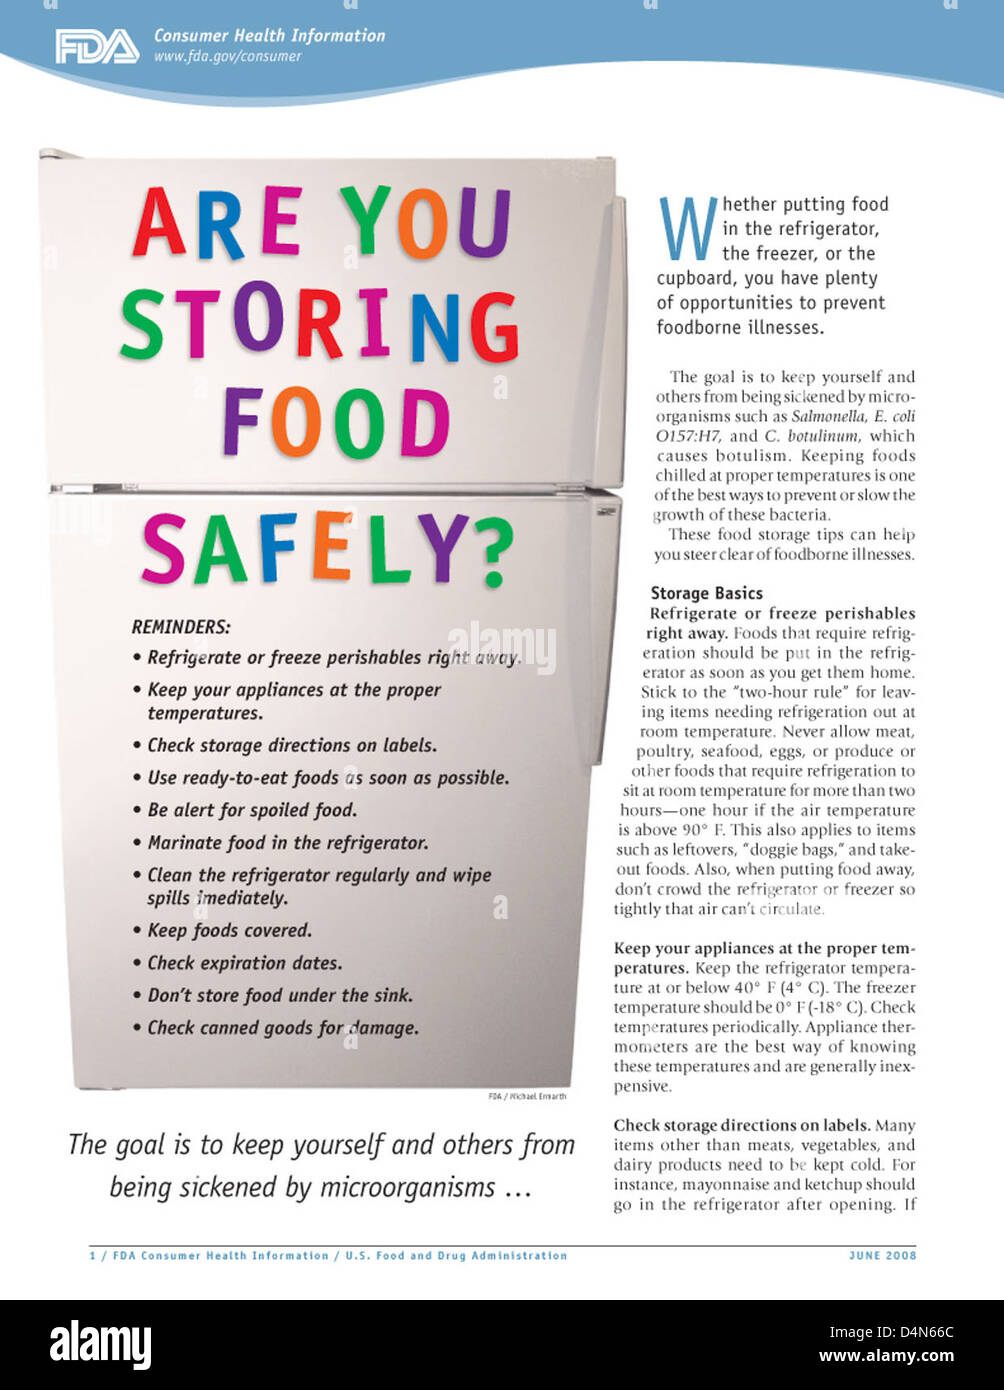 Are You Storing Food Safely? - Stock Image